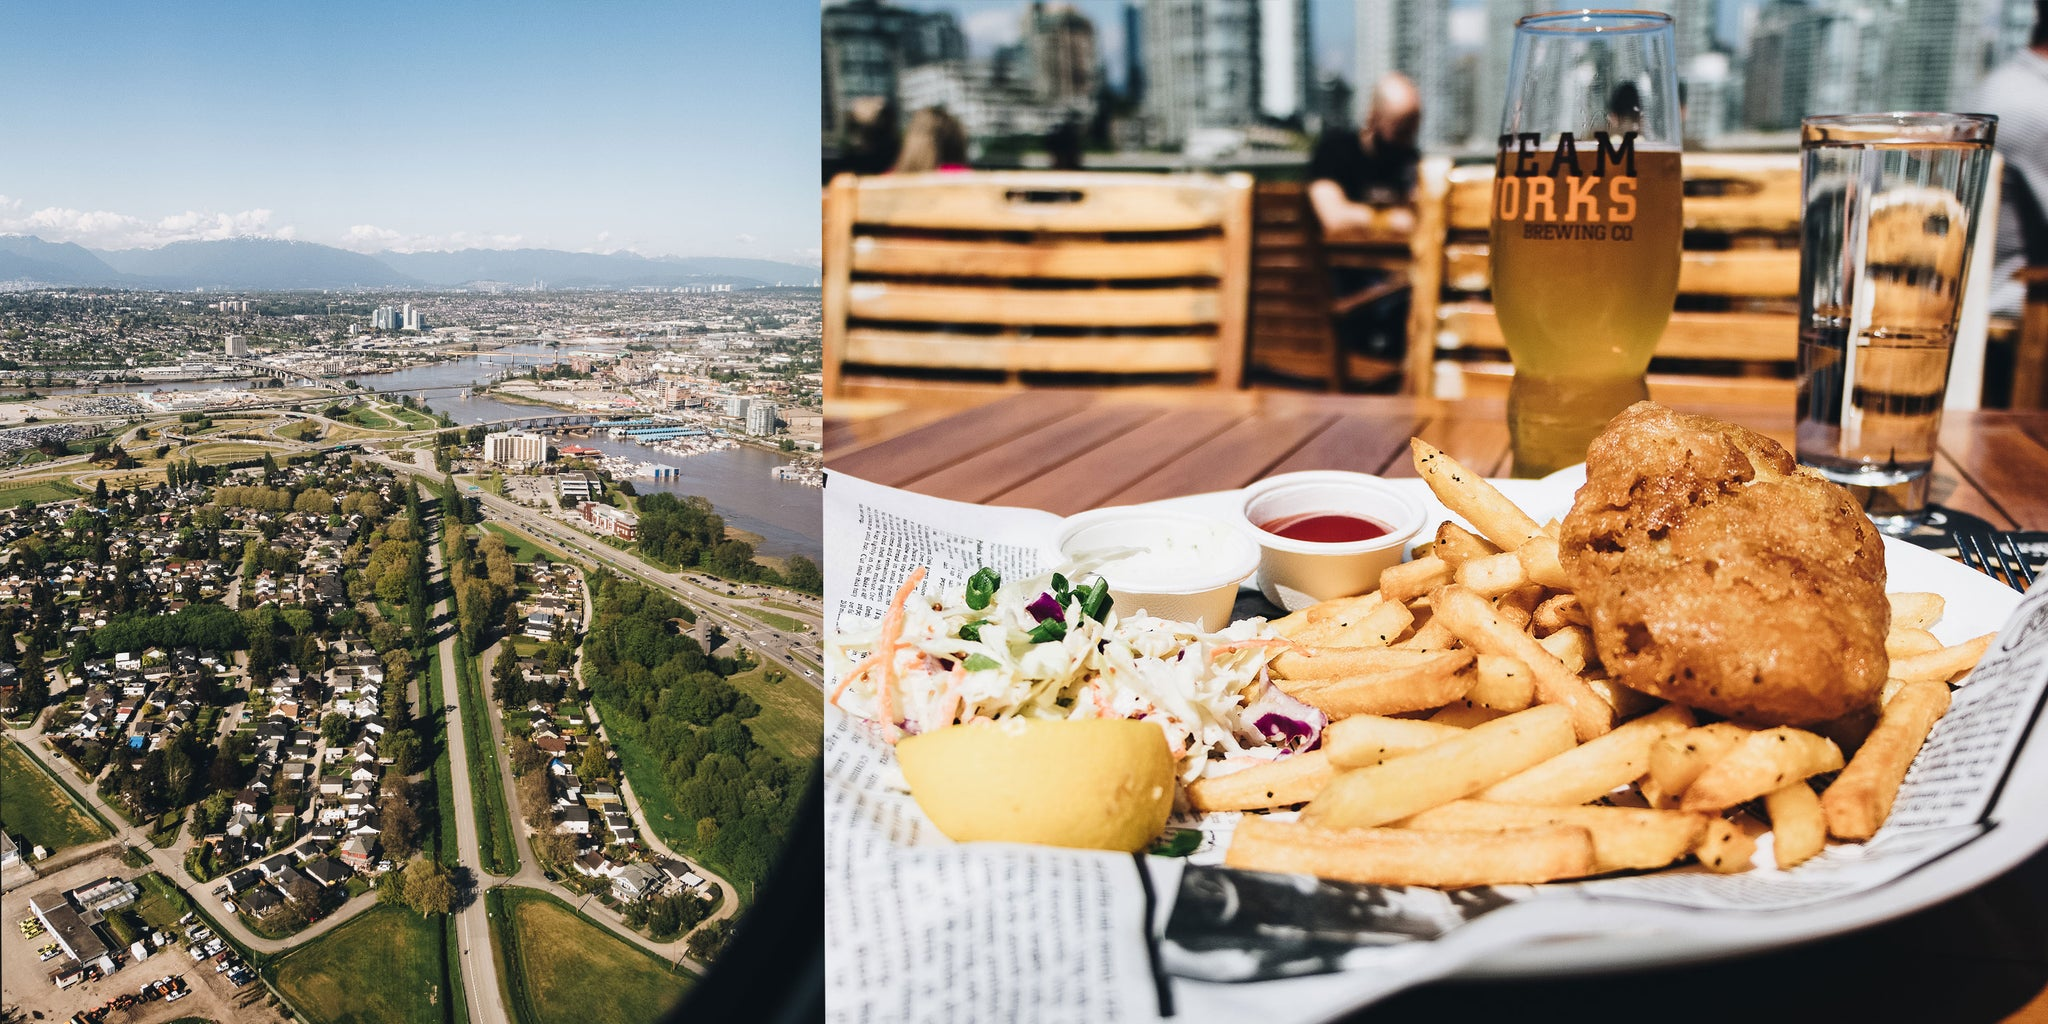 Bather's Excellent Adventures in Vancouver with Brandon Lind | Lunch at Team Works Brewing Co.